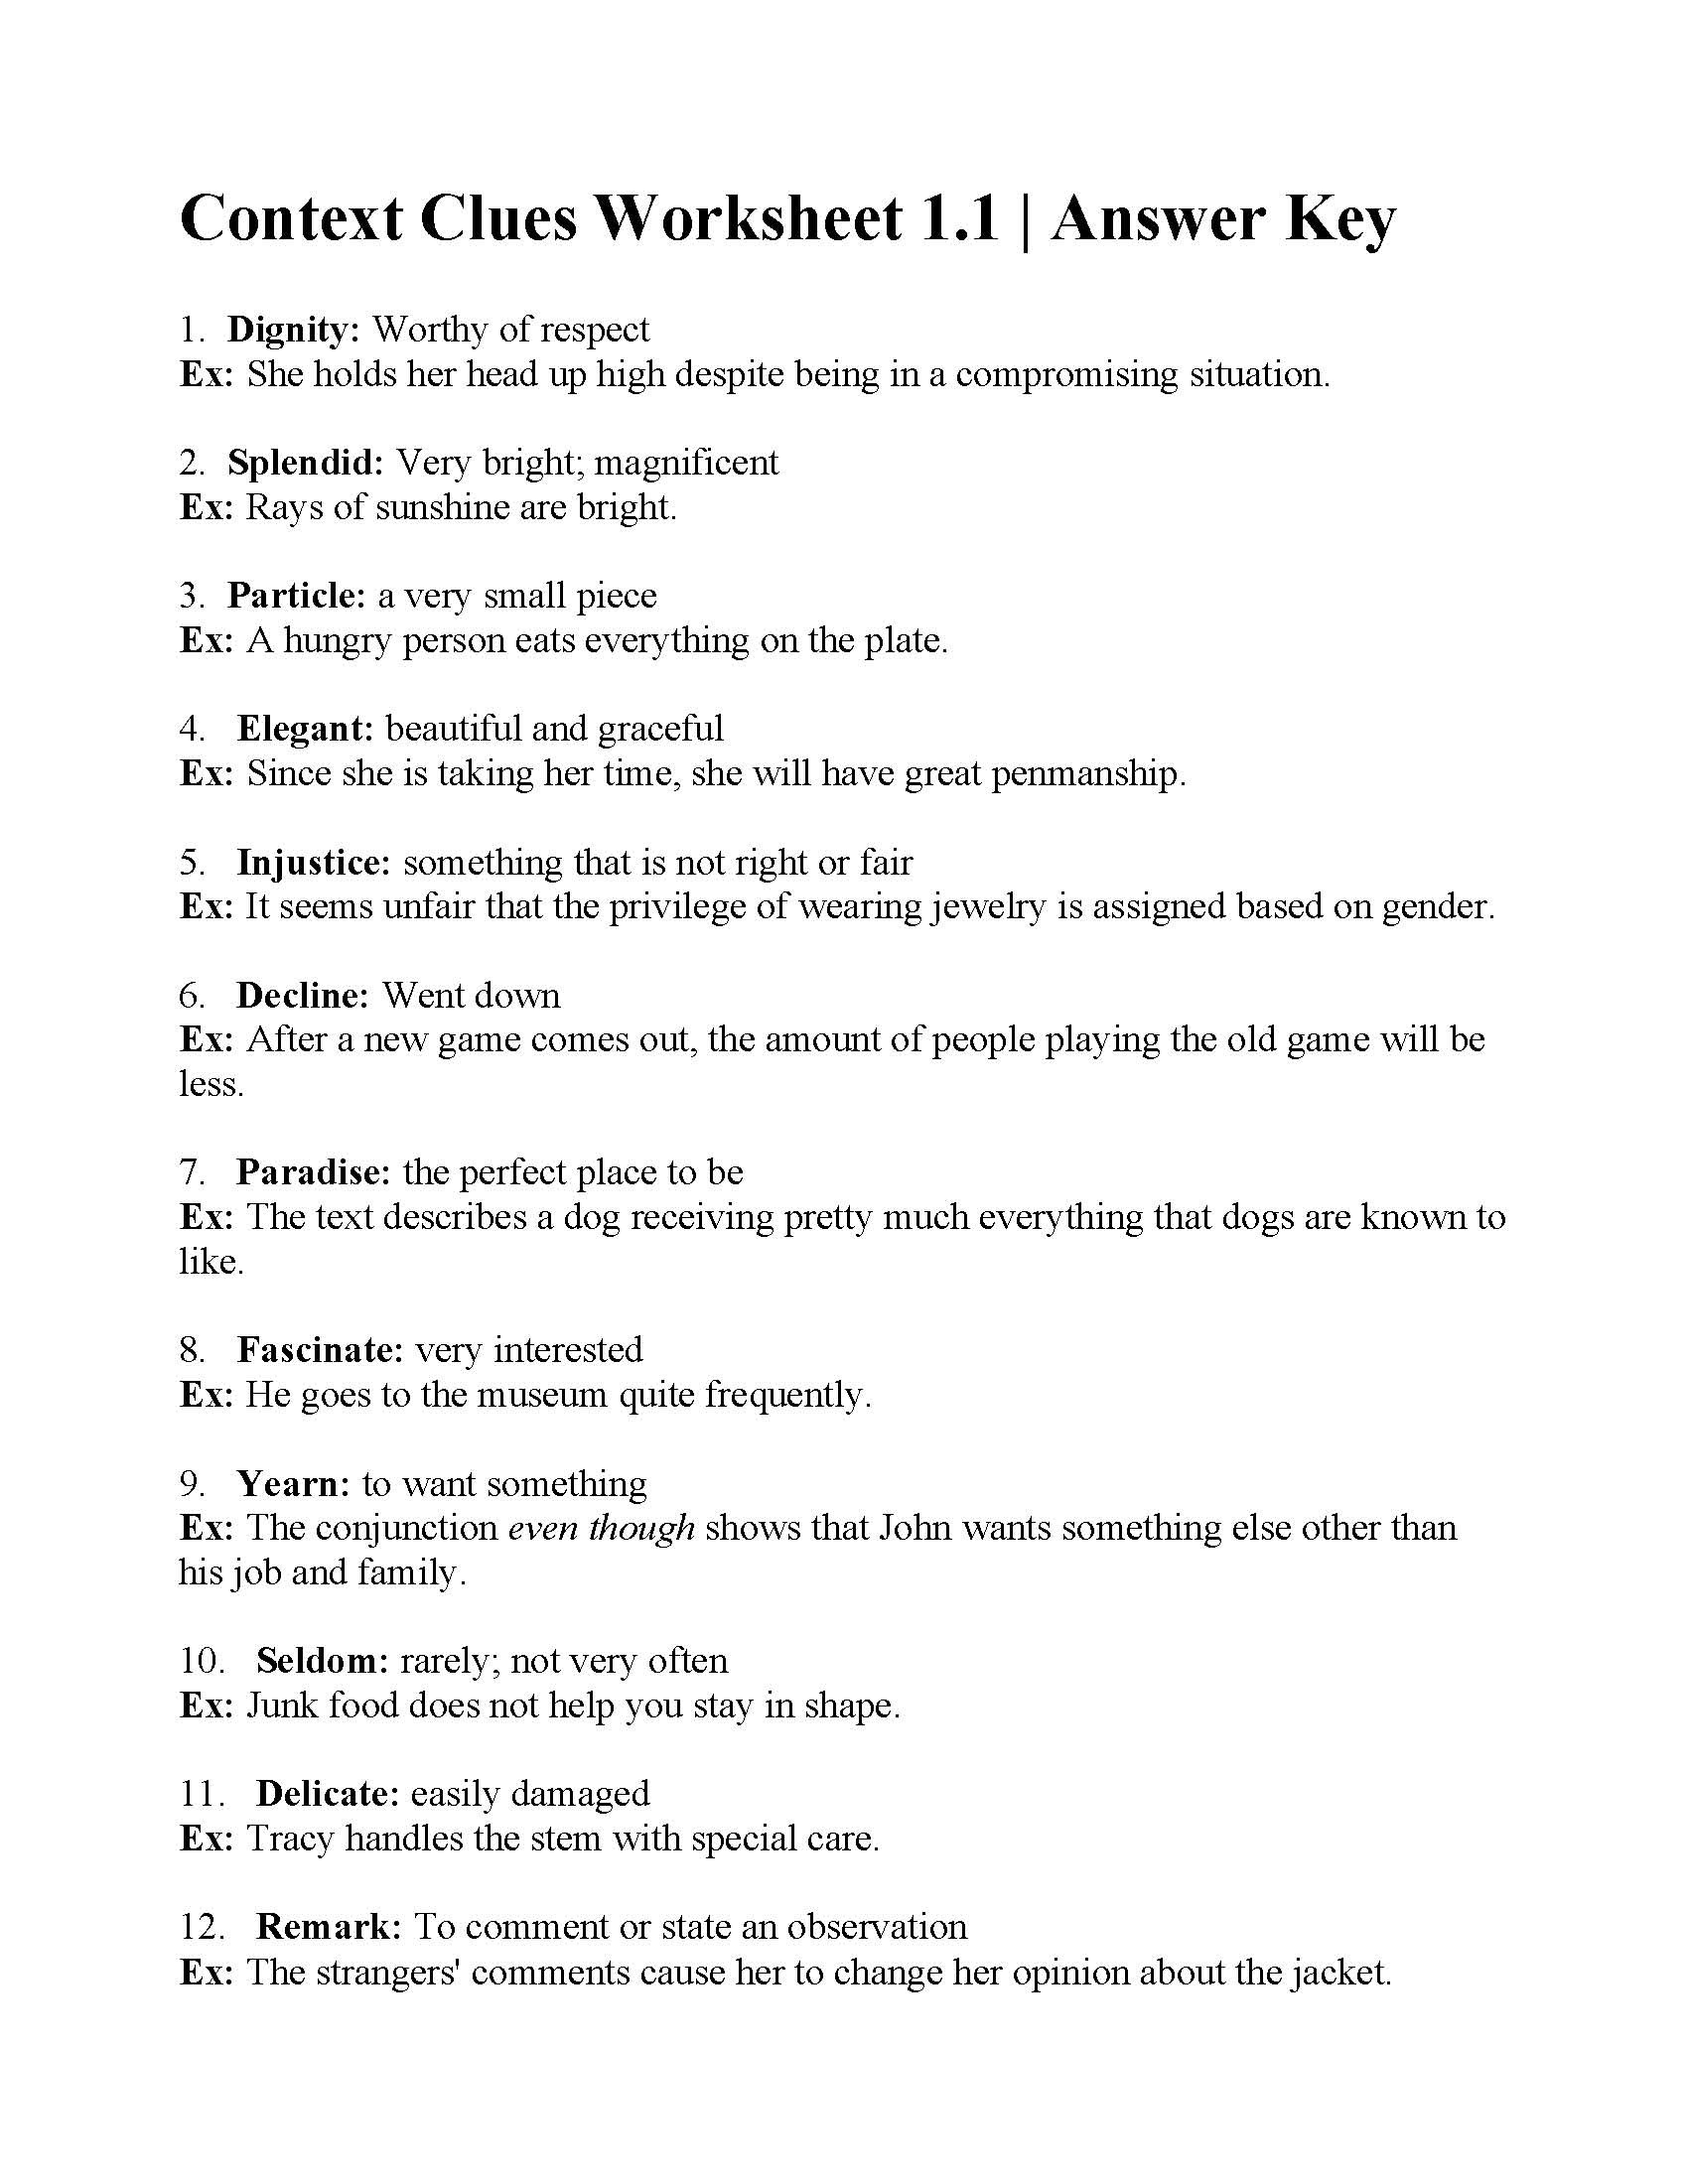 5th Grade Context Clues Worksheets 38 Interesting Context Clues Worksheets